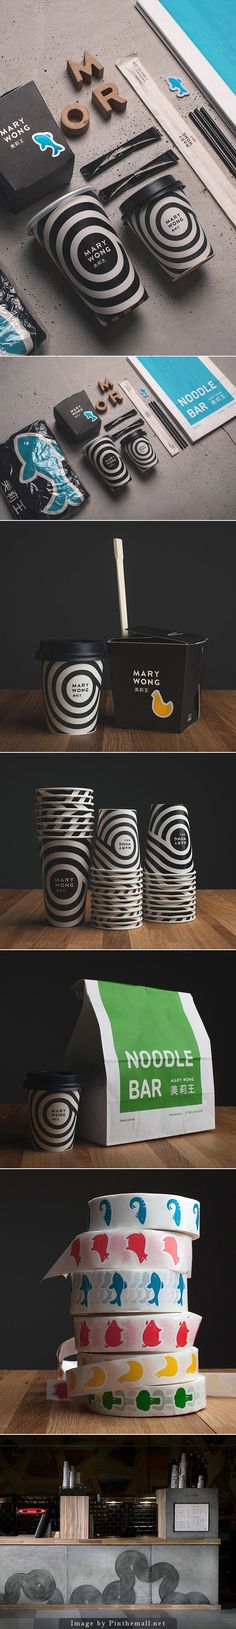 Who wants noodles for lunch packaging curated by Packaging Diva PD created via http://weandthecolor.com/mary-wong-brand-design-fork/42432